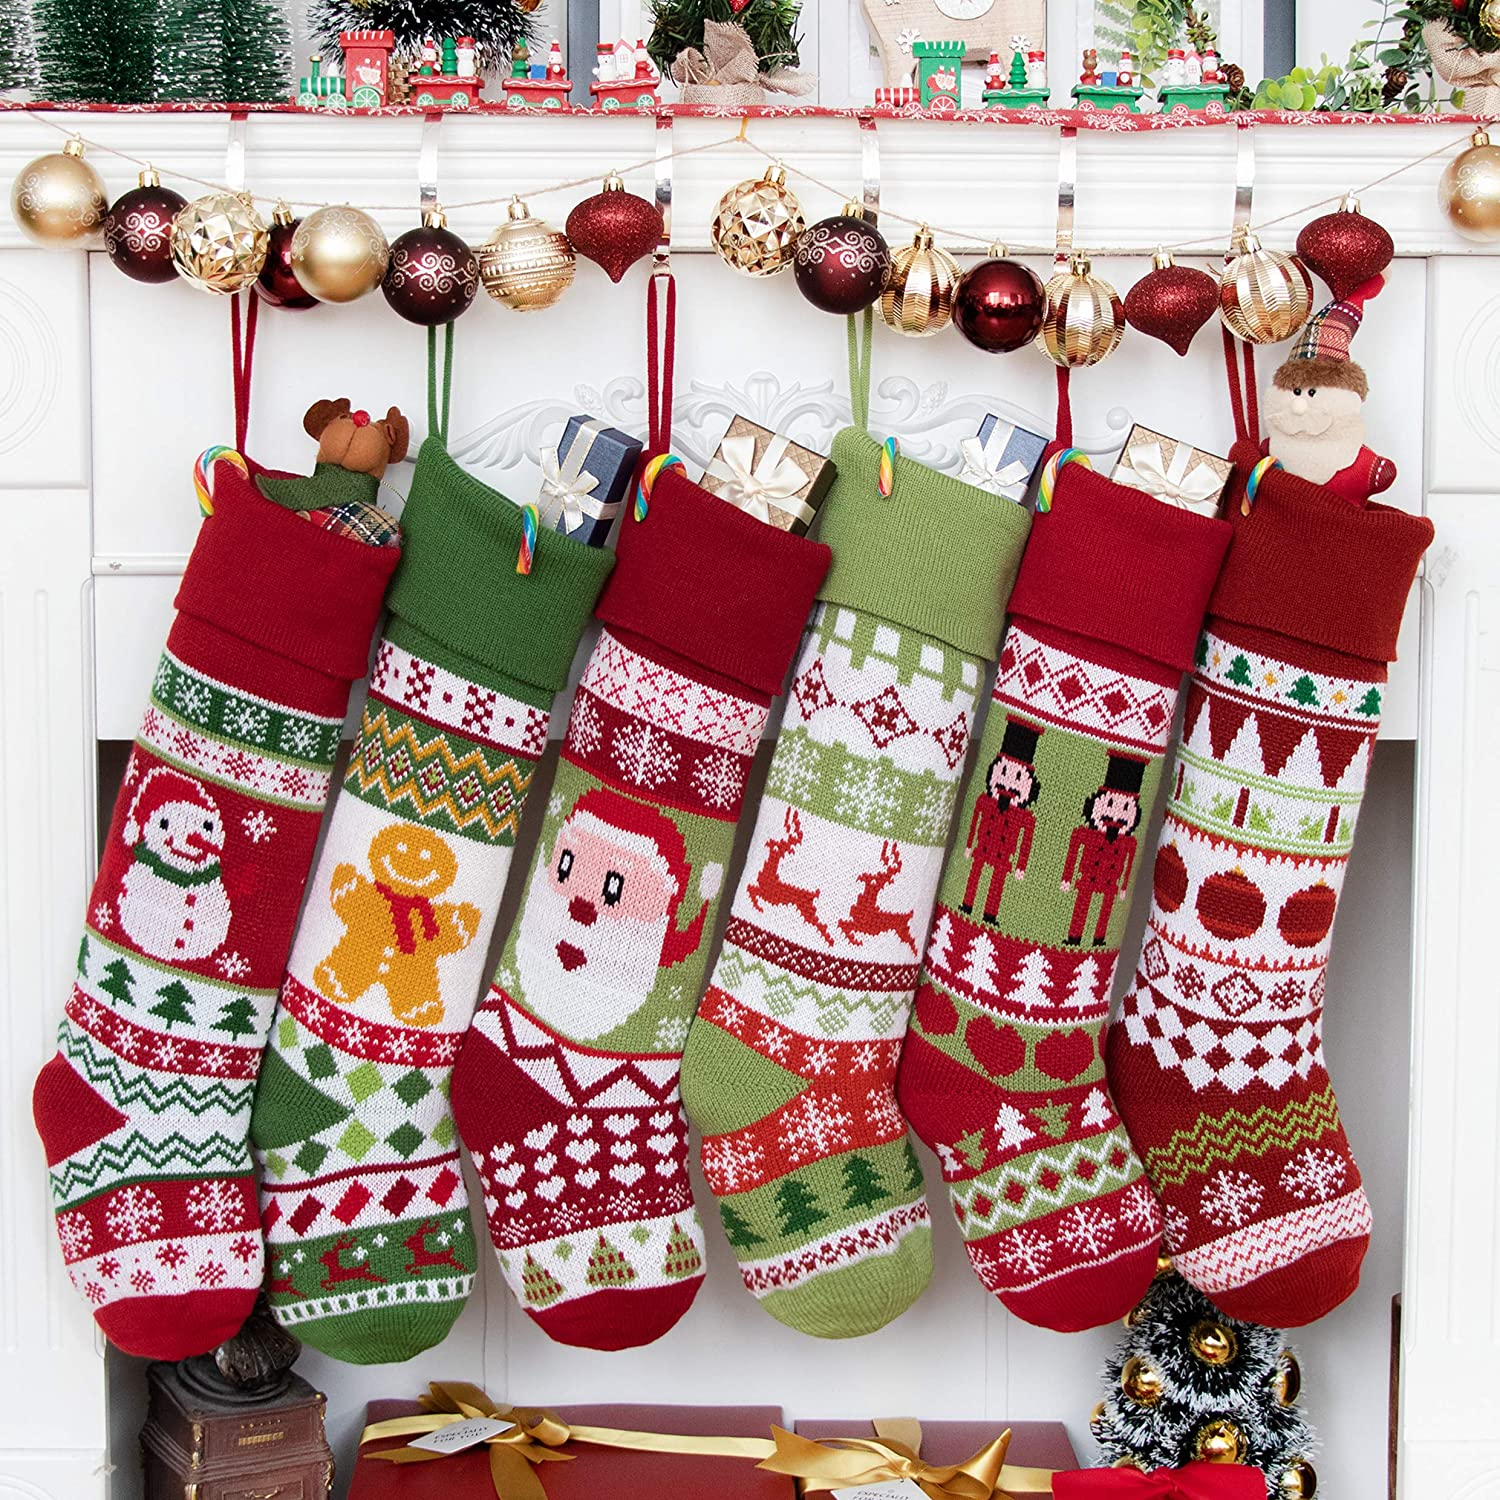 BHD Special sale item Milwaukee Mall BEAUTY Knitting Family Christmas Yarn Stocking Heavy Orn for